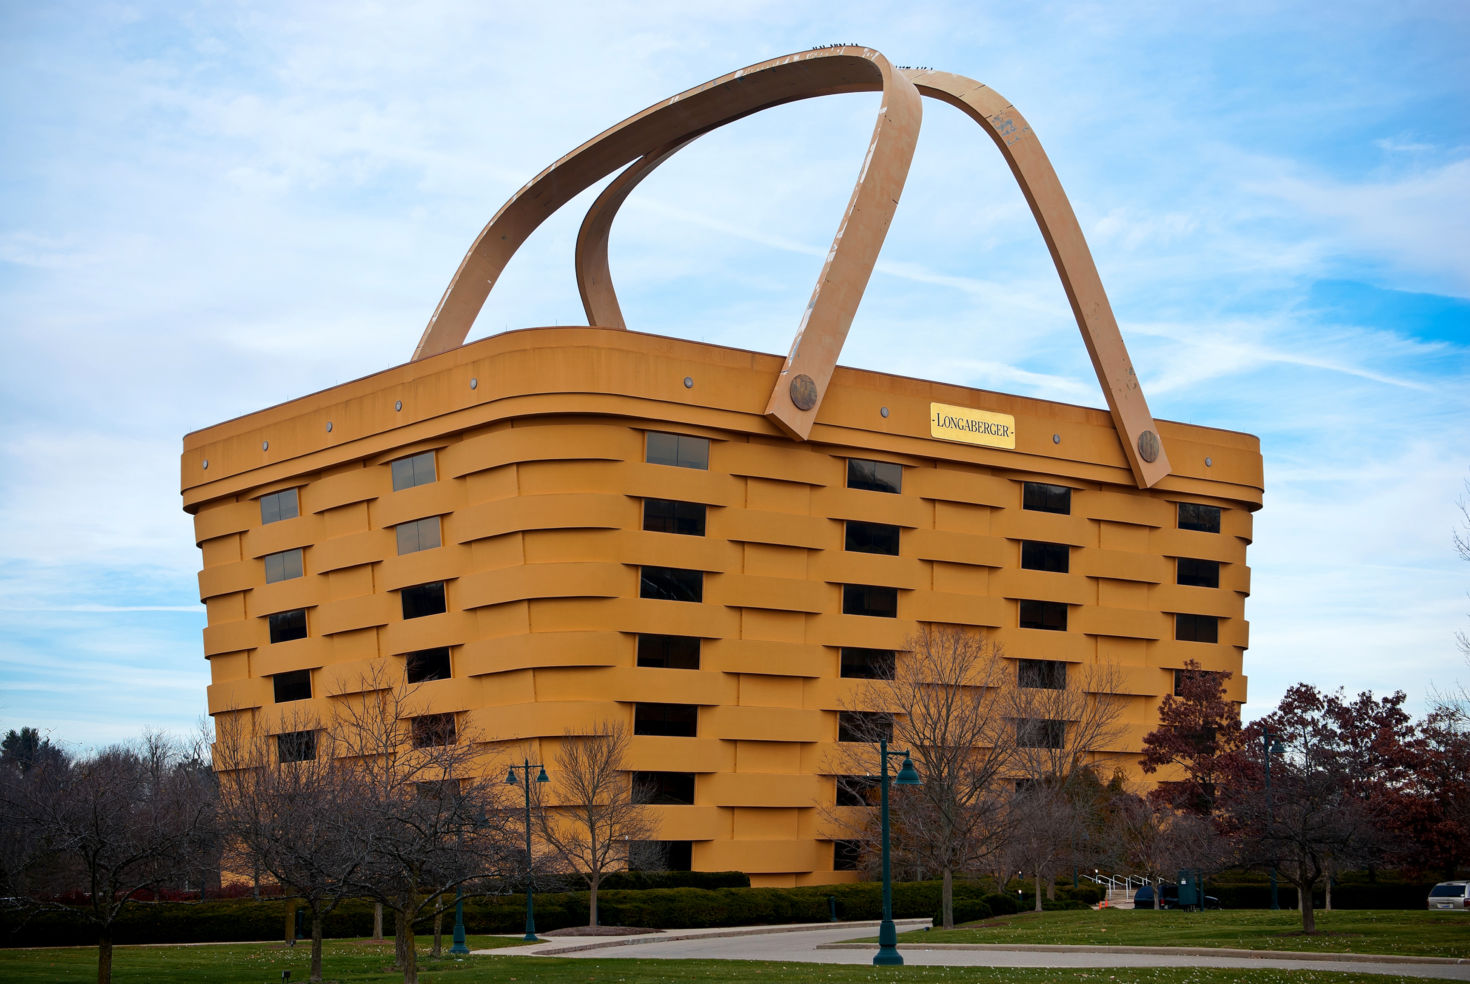 Longaberger Company Baskets in Ohio